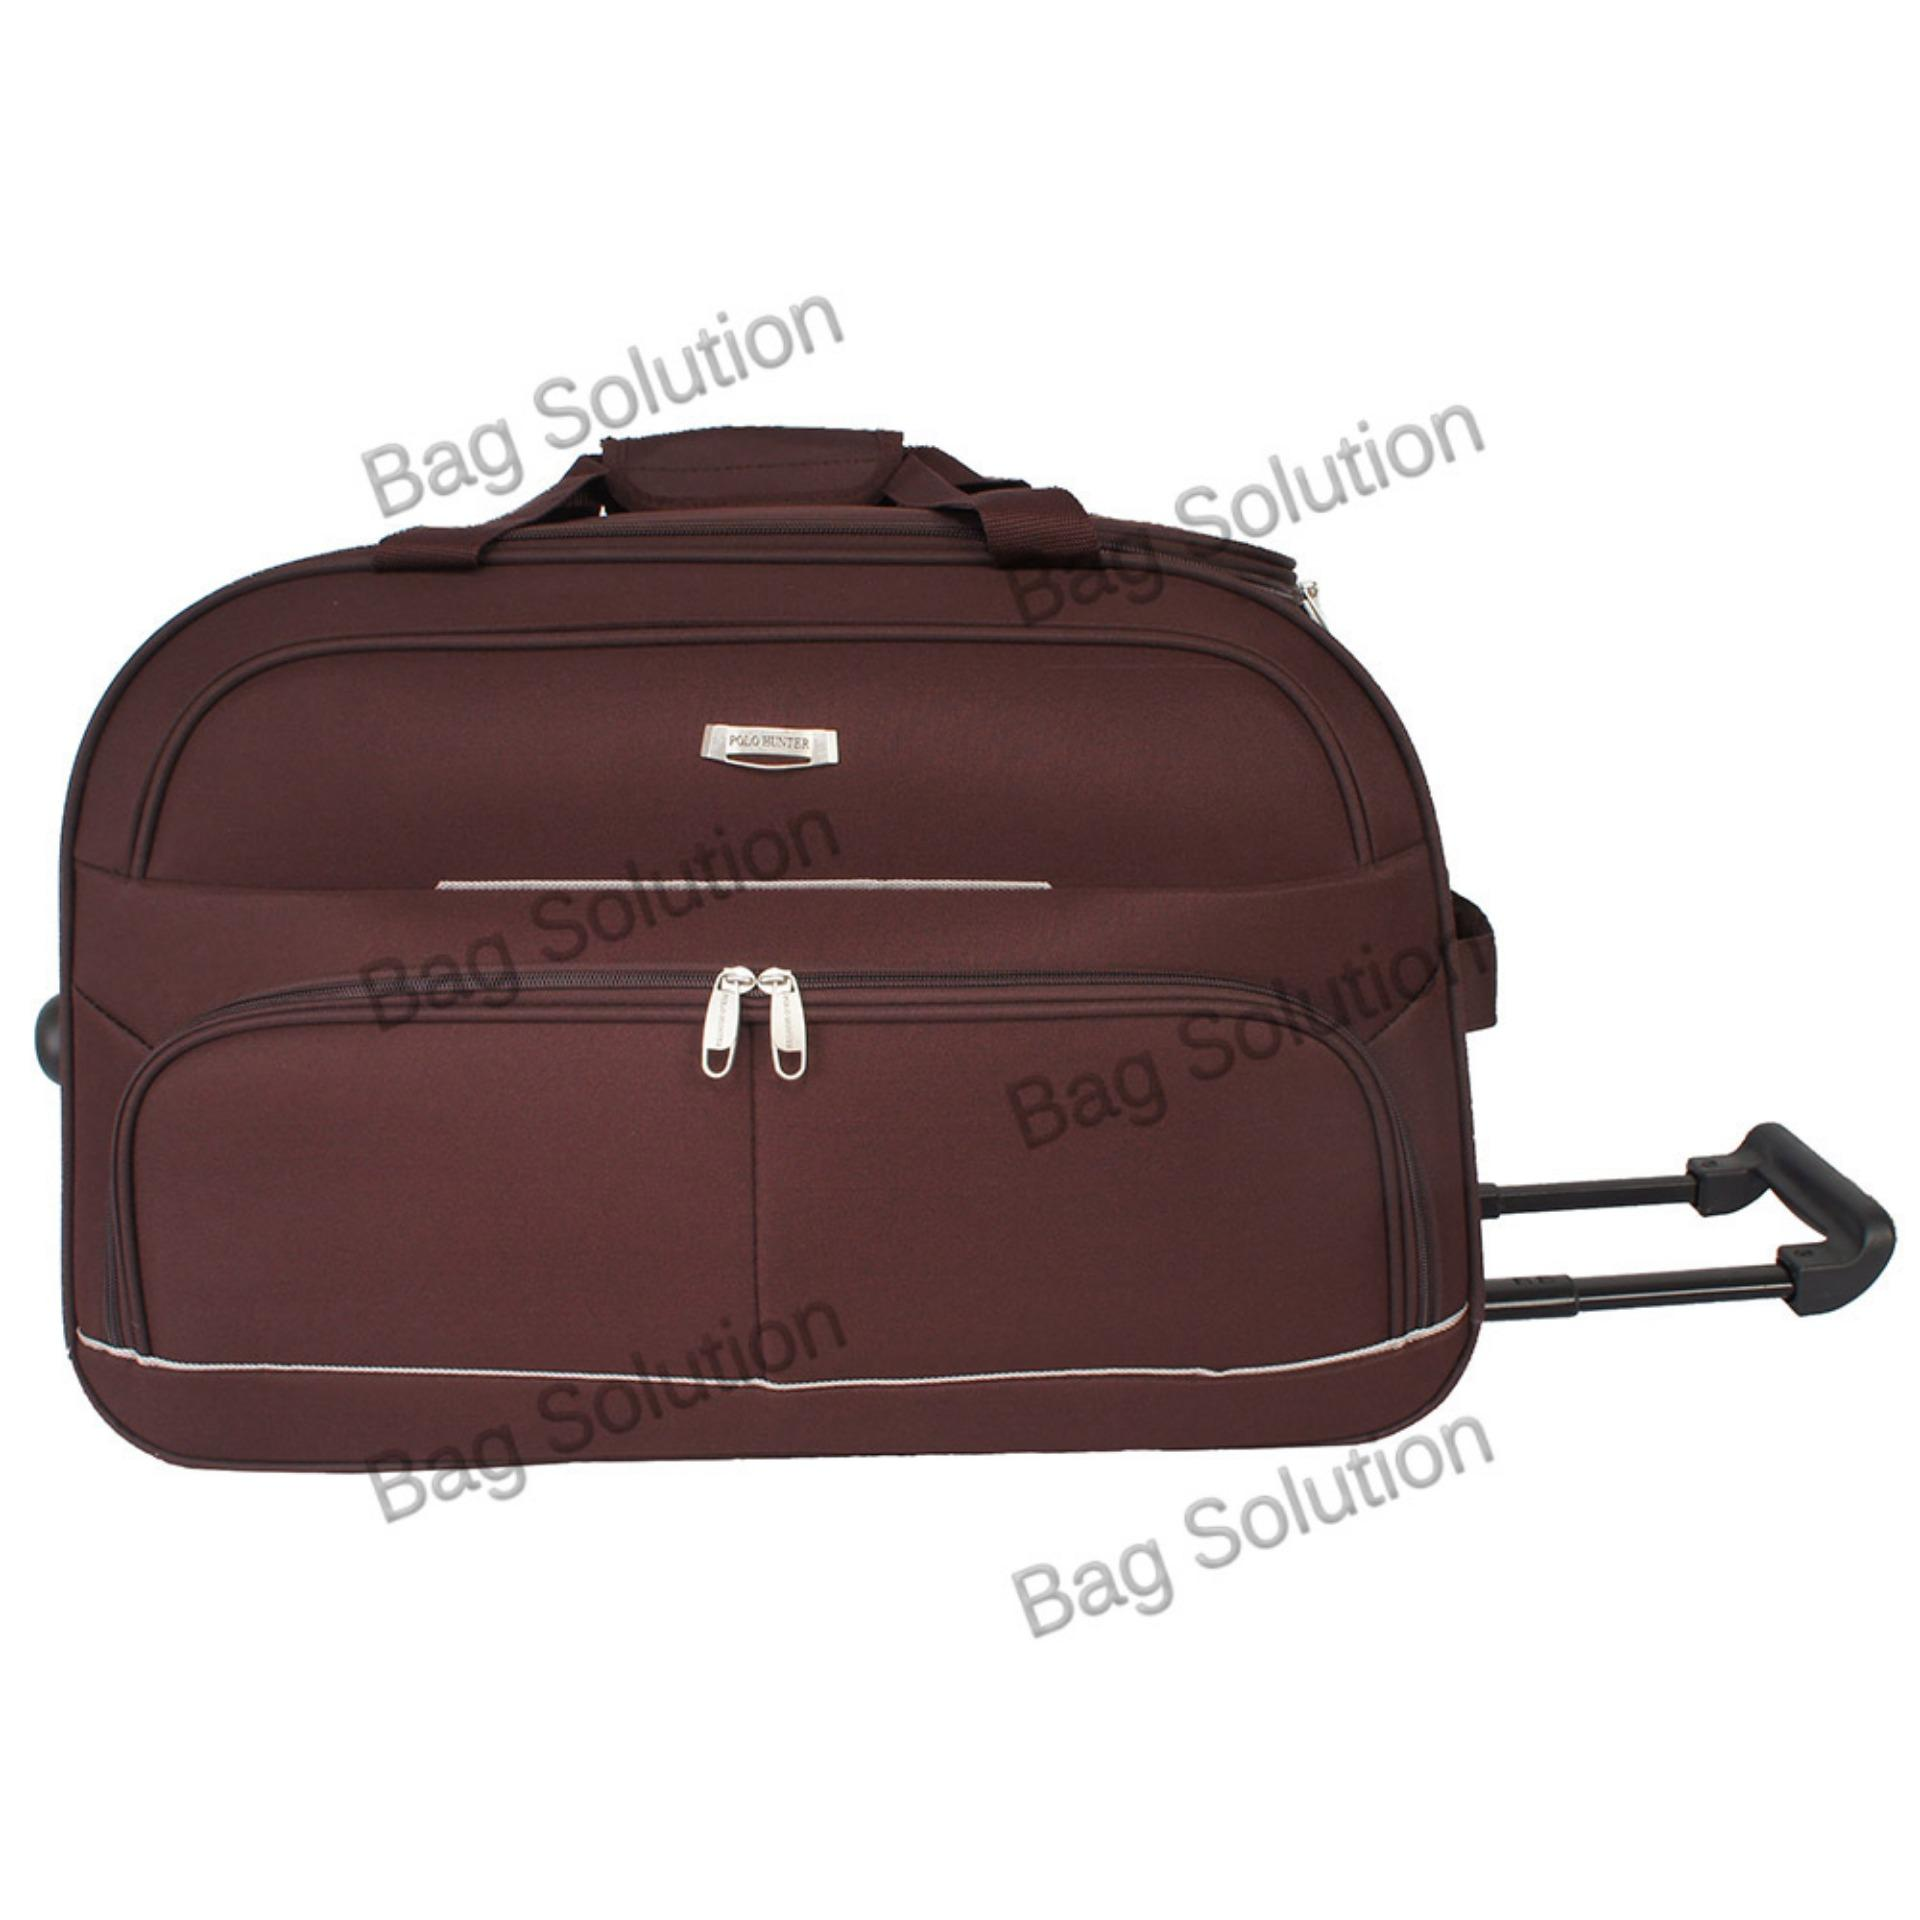 Harga Polo Hunter Tas Kabin Trolley Duffle Bag With Trolley 593 Size 23 Inch Coffee Baru